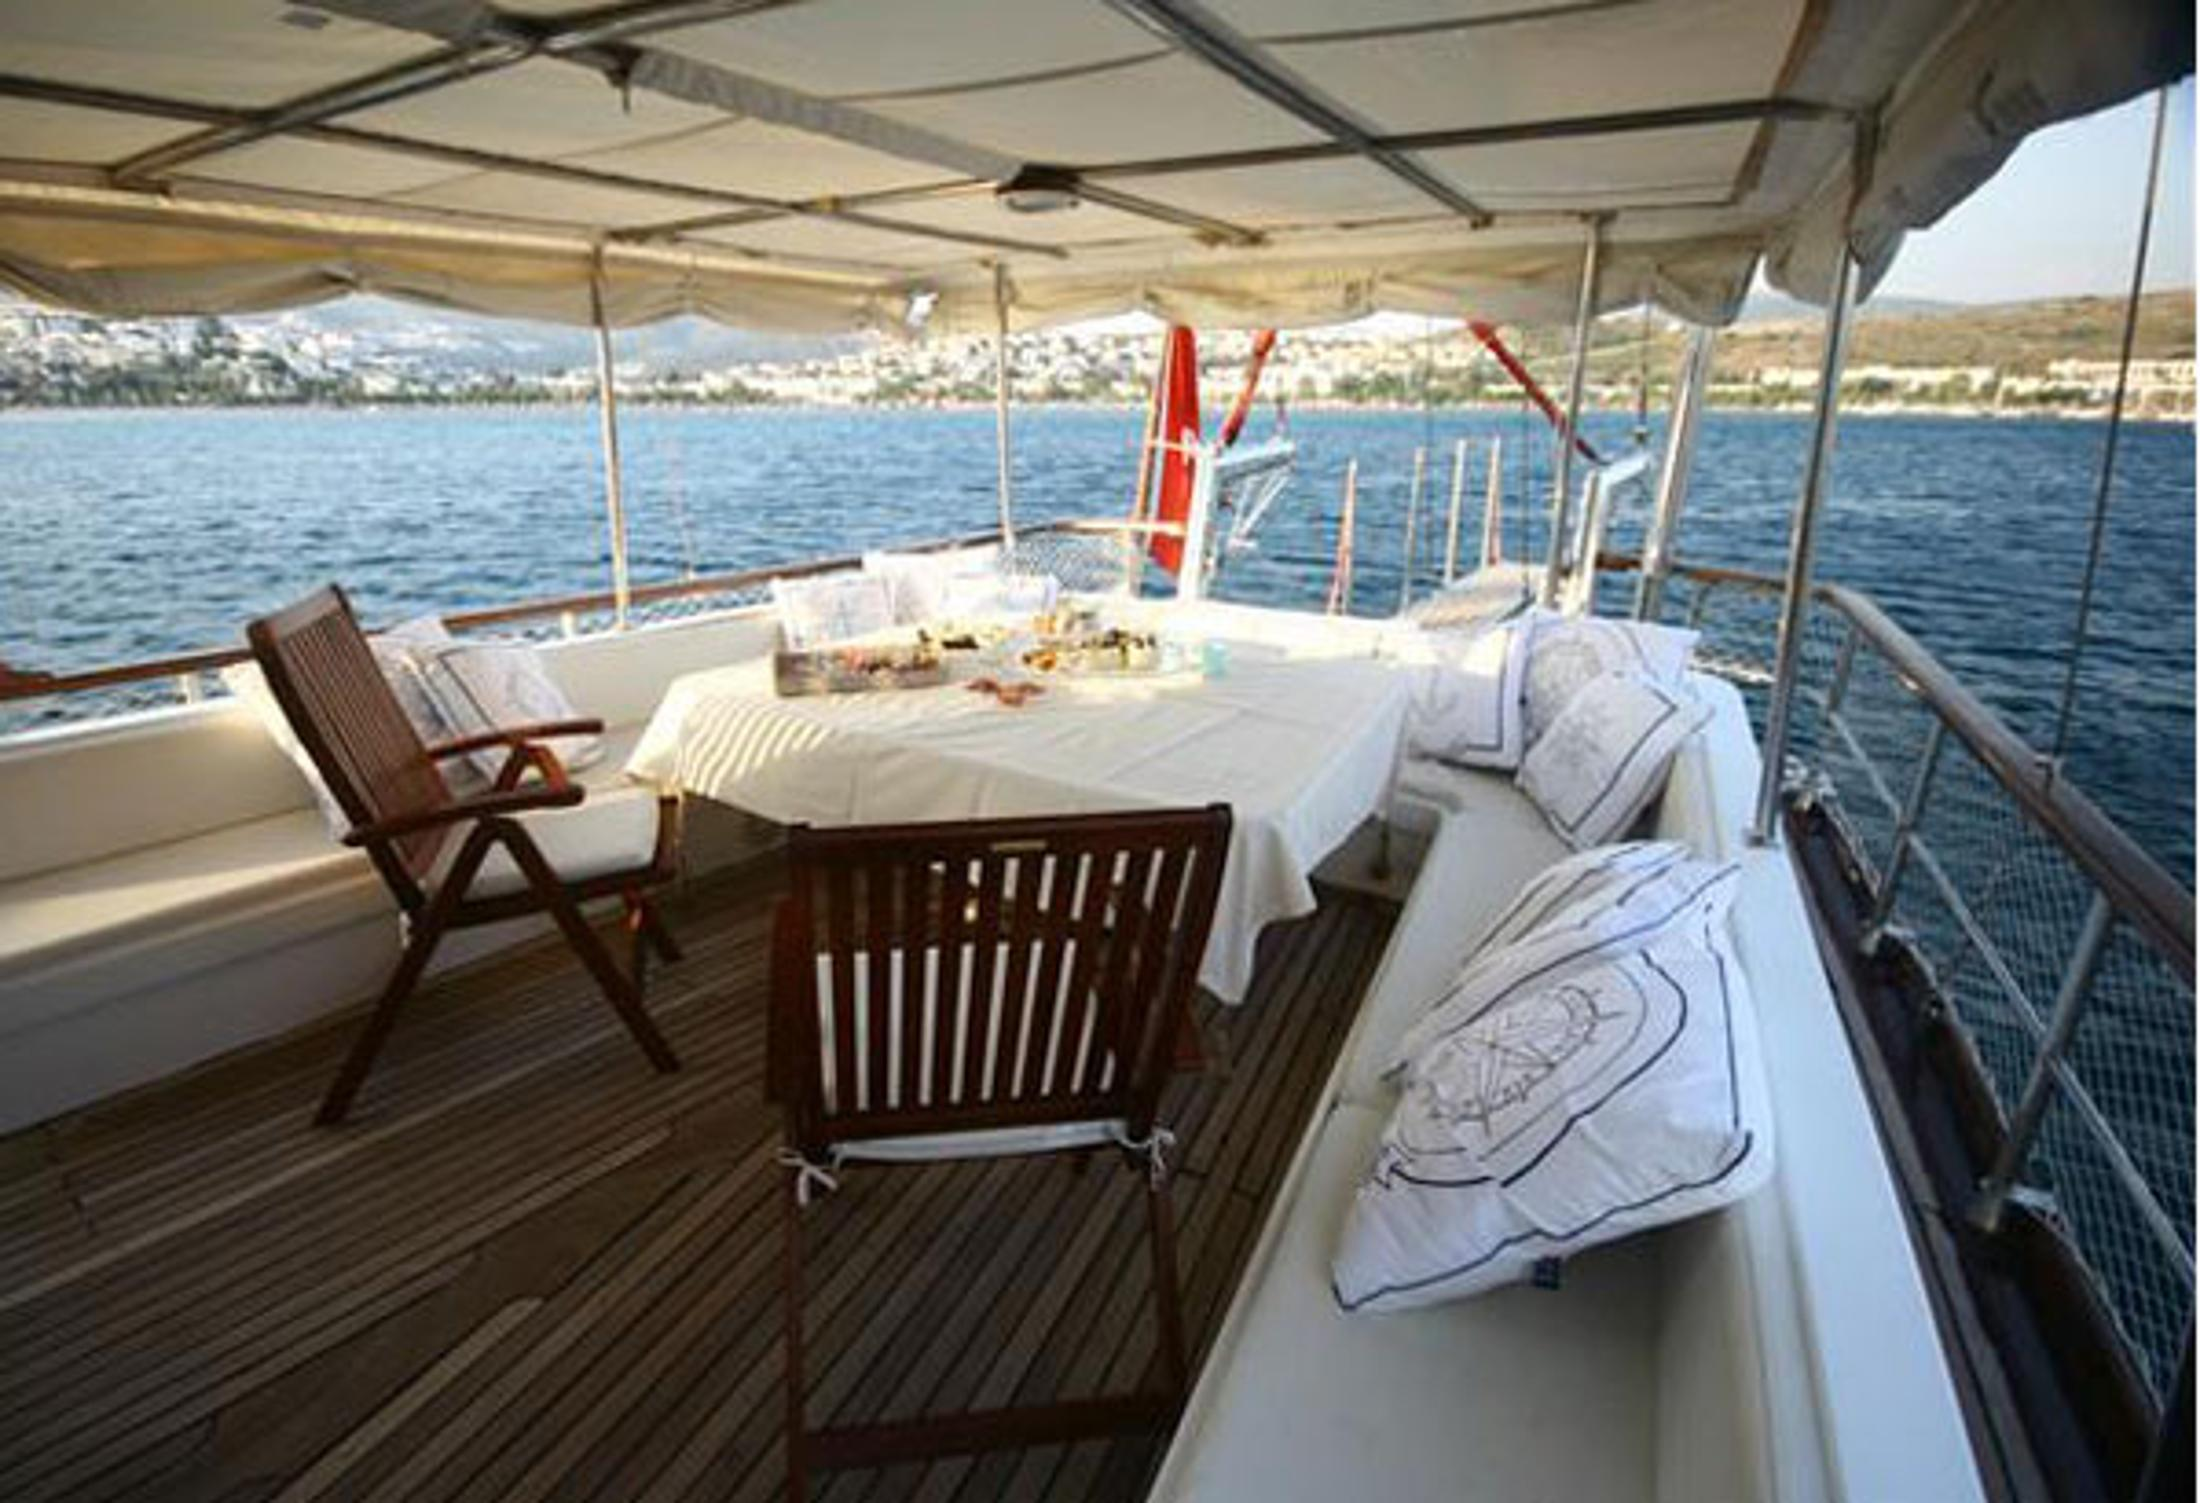 Aft Deck With New Sunbrella Upholsteries And Fixed Sun Awning